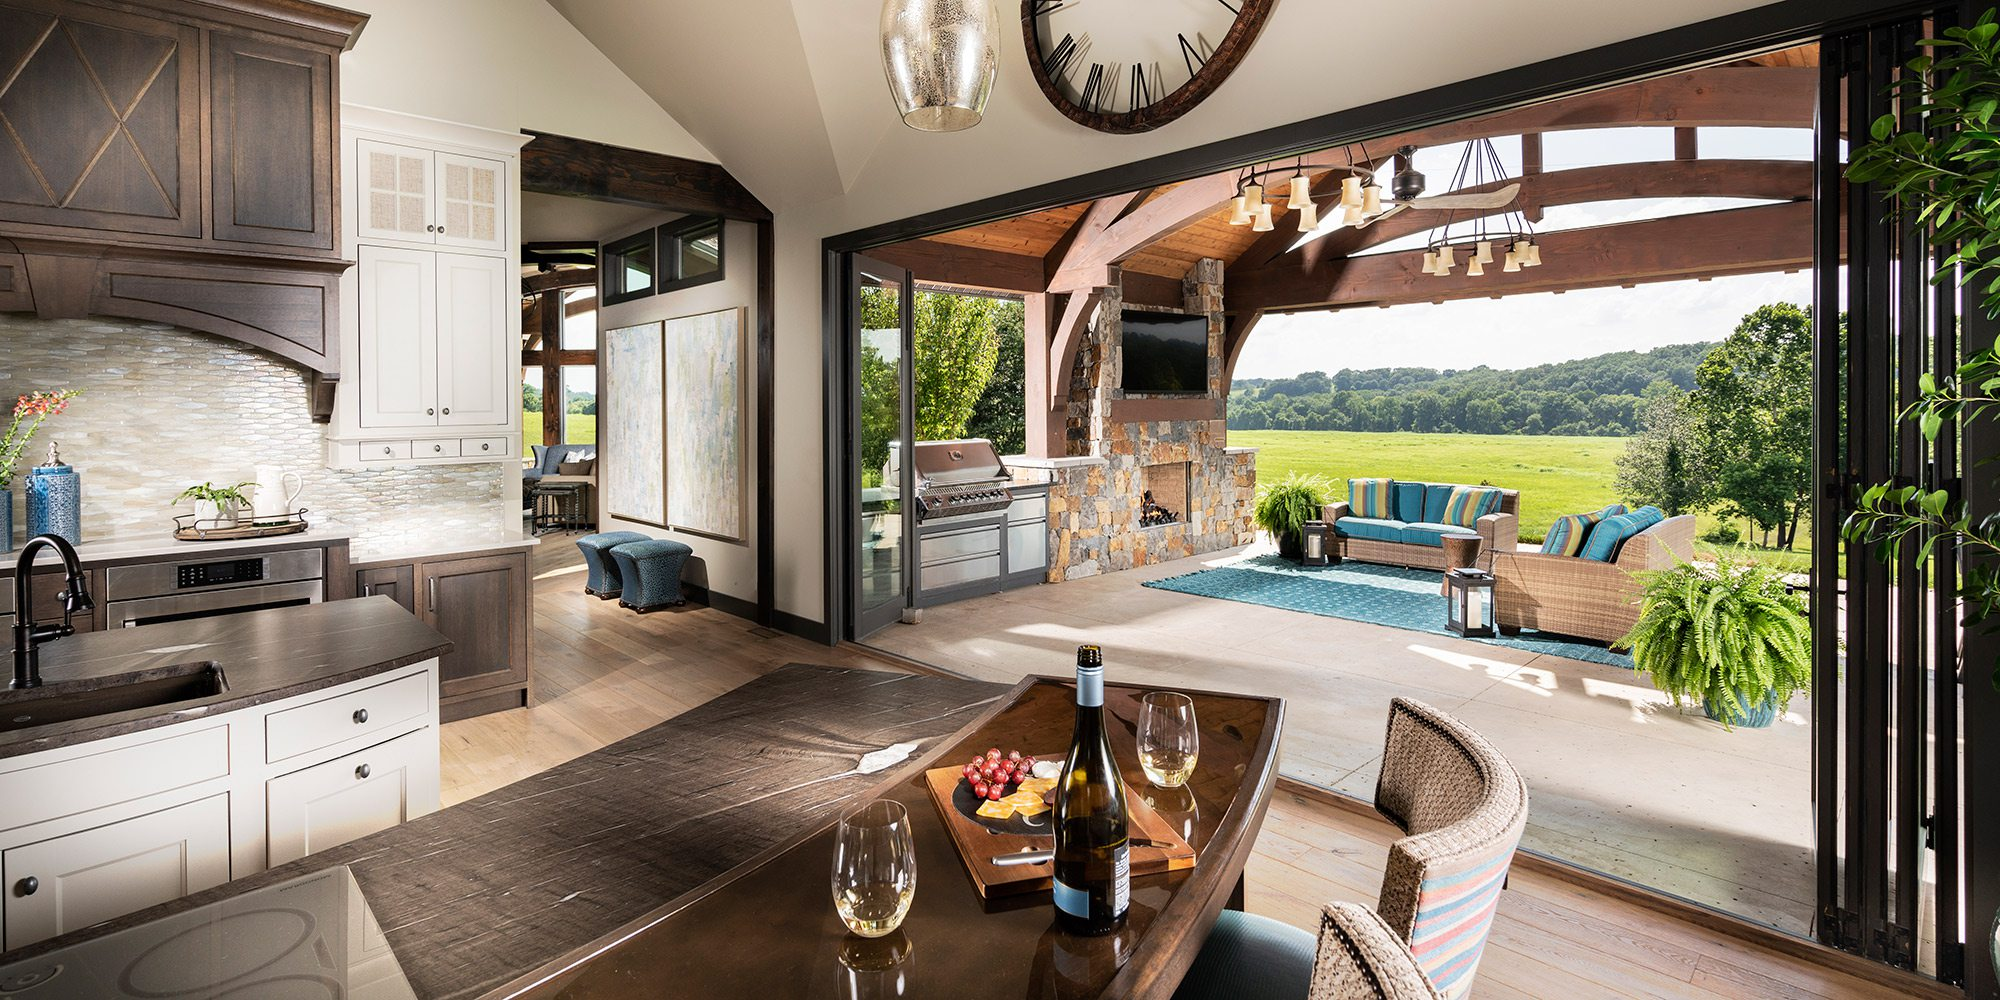 Open air kitchen overlooking an infinity pool